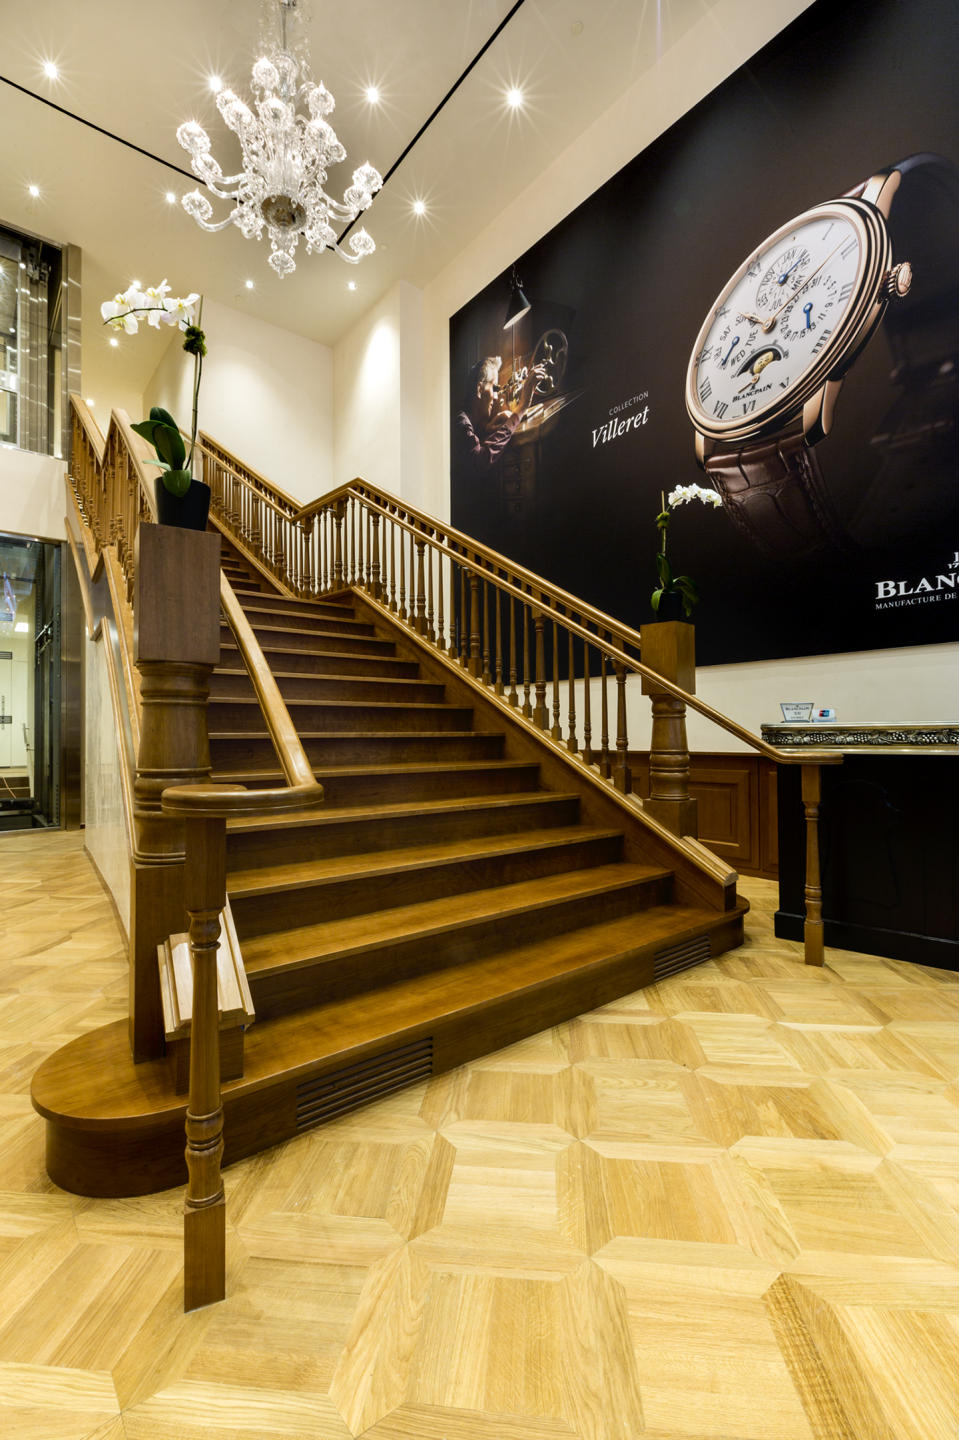 Blancpain Watches retail store on 5th Avenue NYC for the Swatchgroup, Inc. : Blancpain Watches NYC : New York NY Architectural Photographer | Interior and Exterior